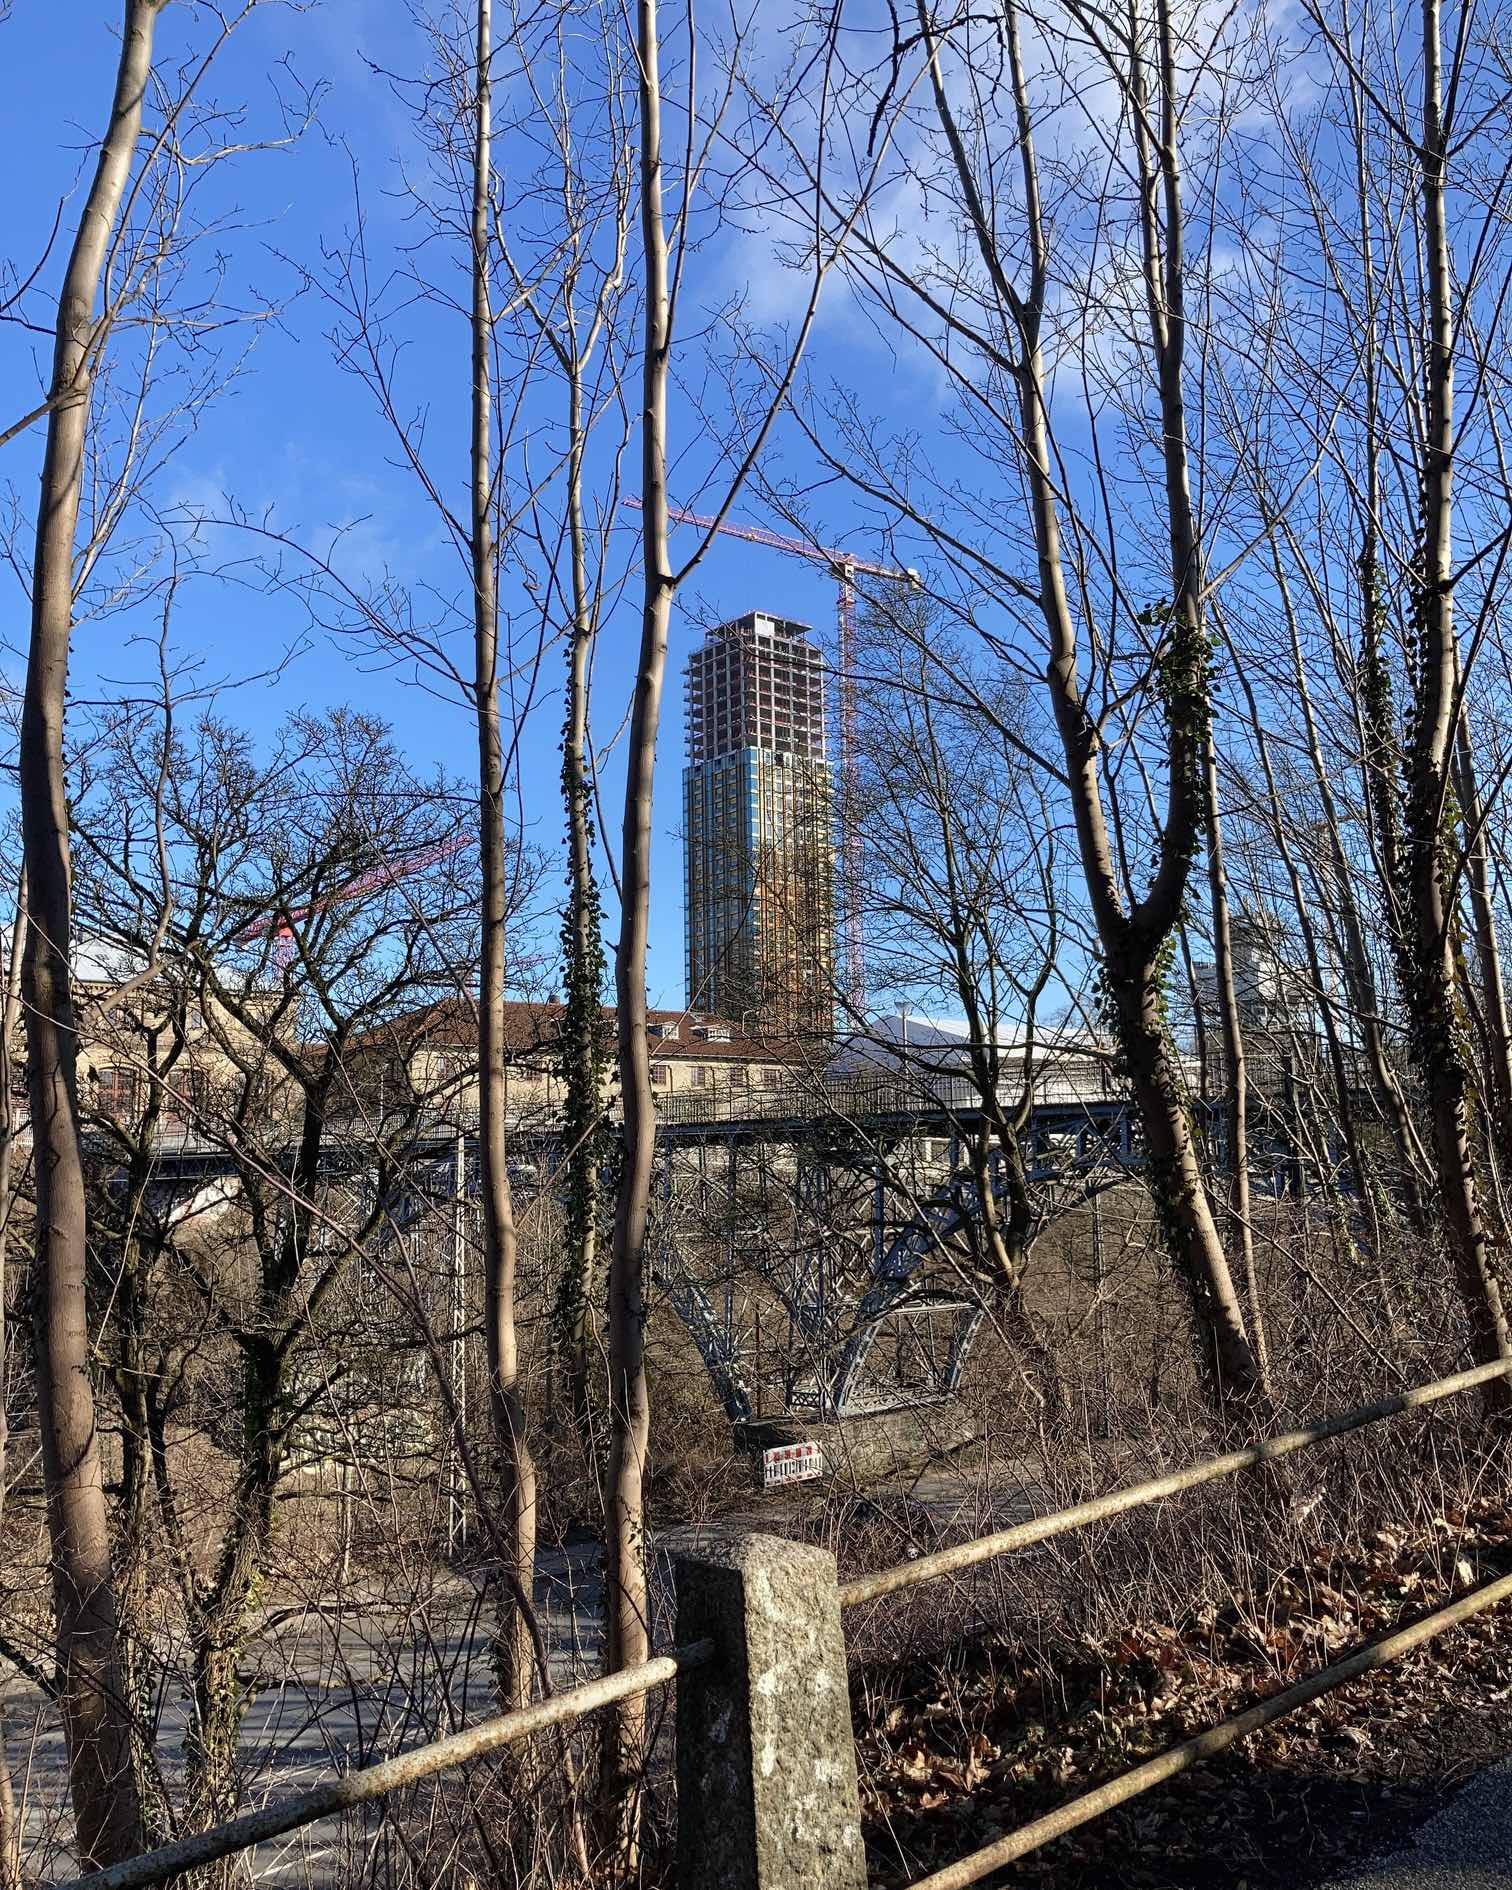 Through the trees, across the road, a view of the three-quarter-clad tower. Crisp blue sky. A bridge.  Old stone holding old metal pathway railing pipes.